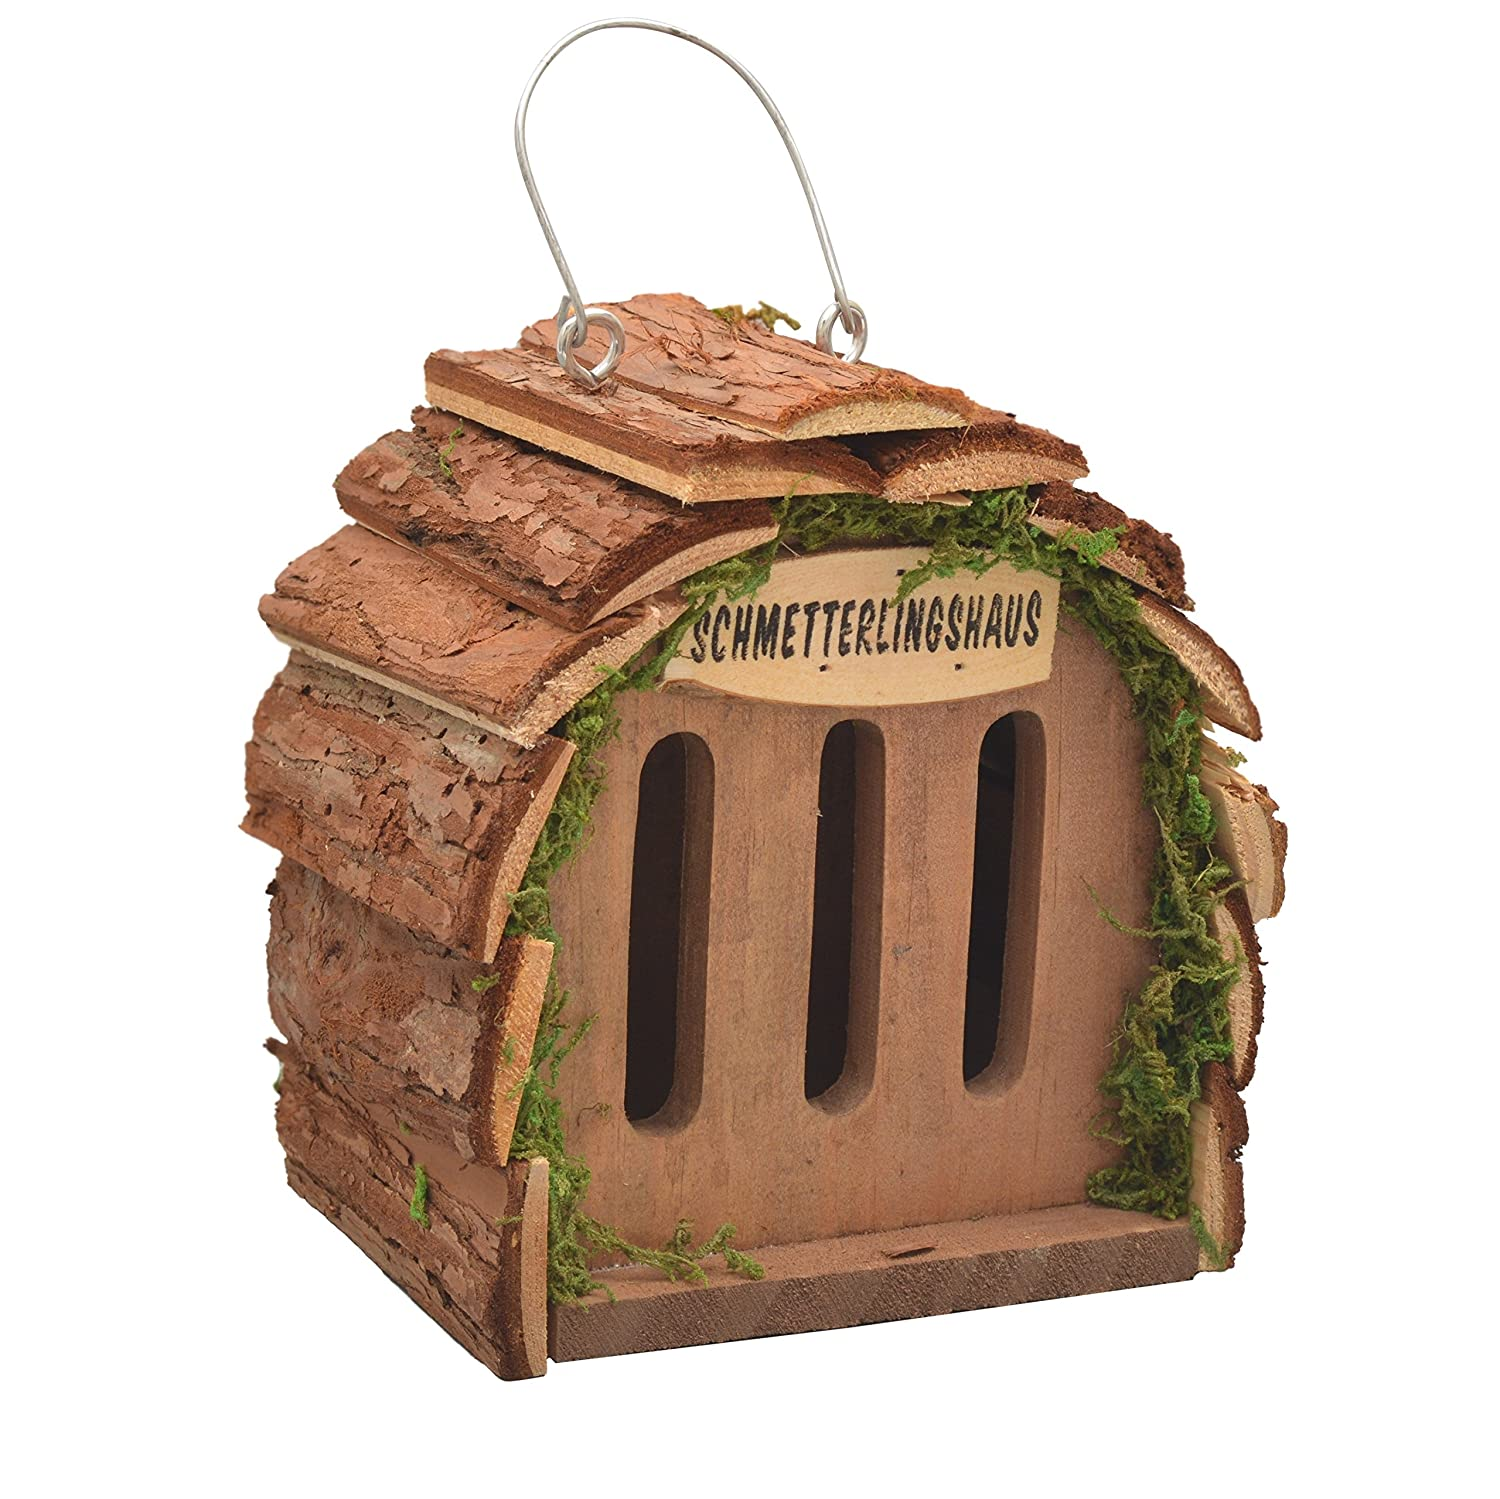 Gardigo Butterfly House for Breeding Butterflies and Garden Decoration, Natural Wood Colours